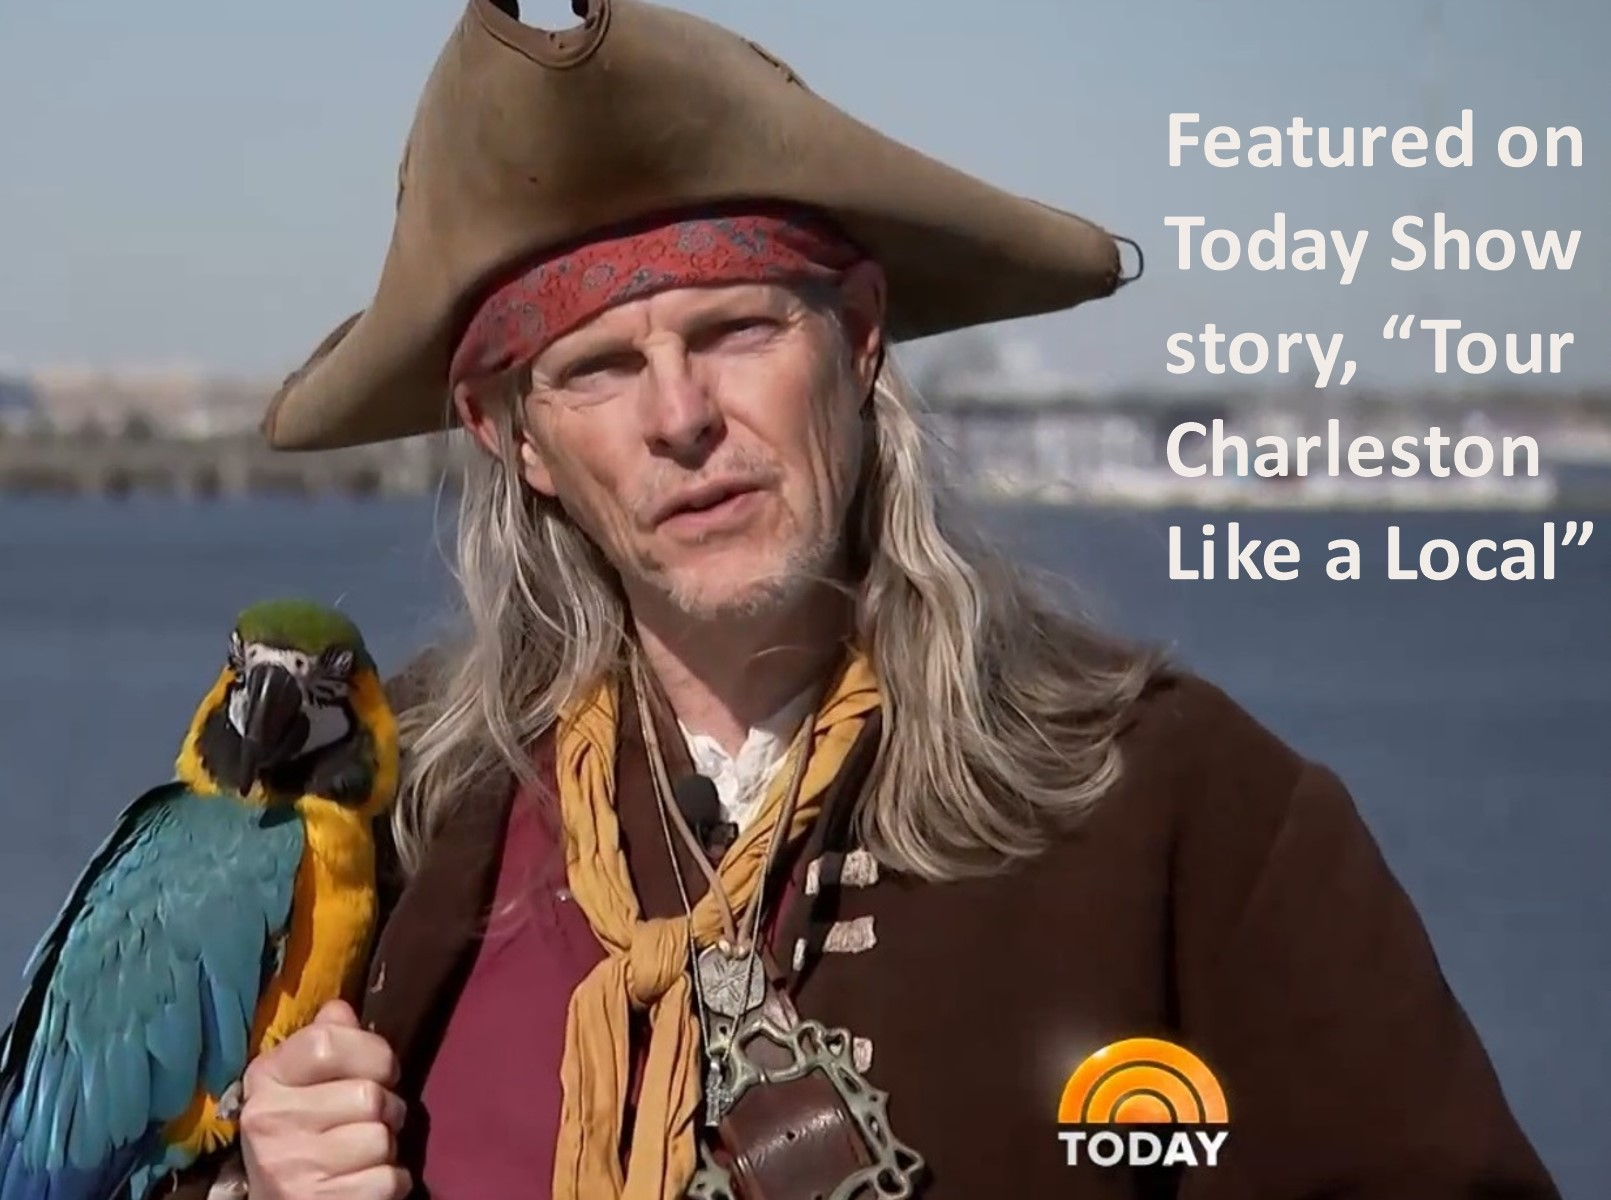 NBC Today Show features Charleston Pirate Tours